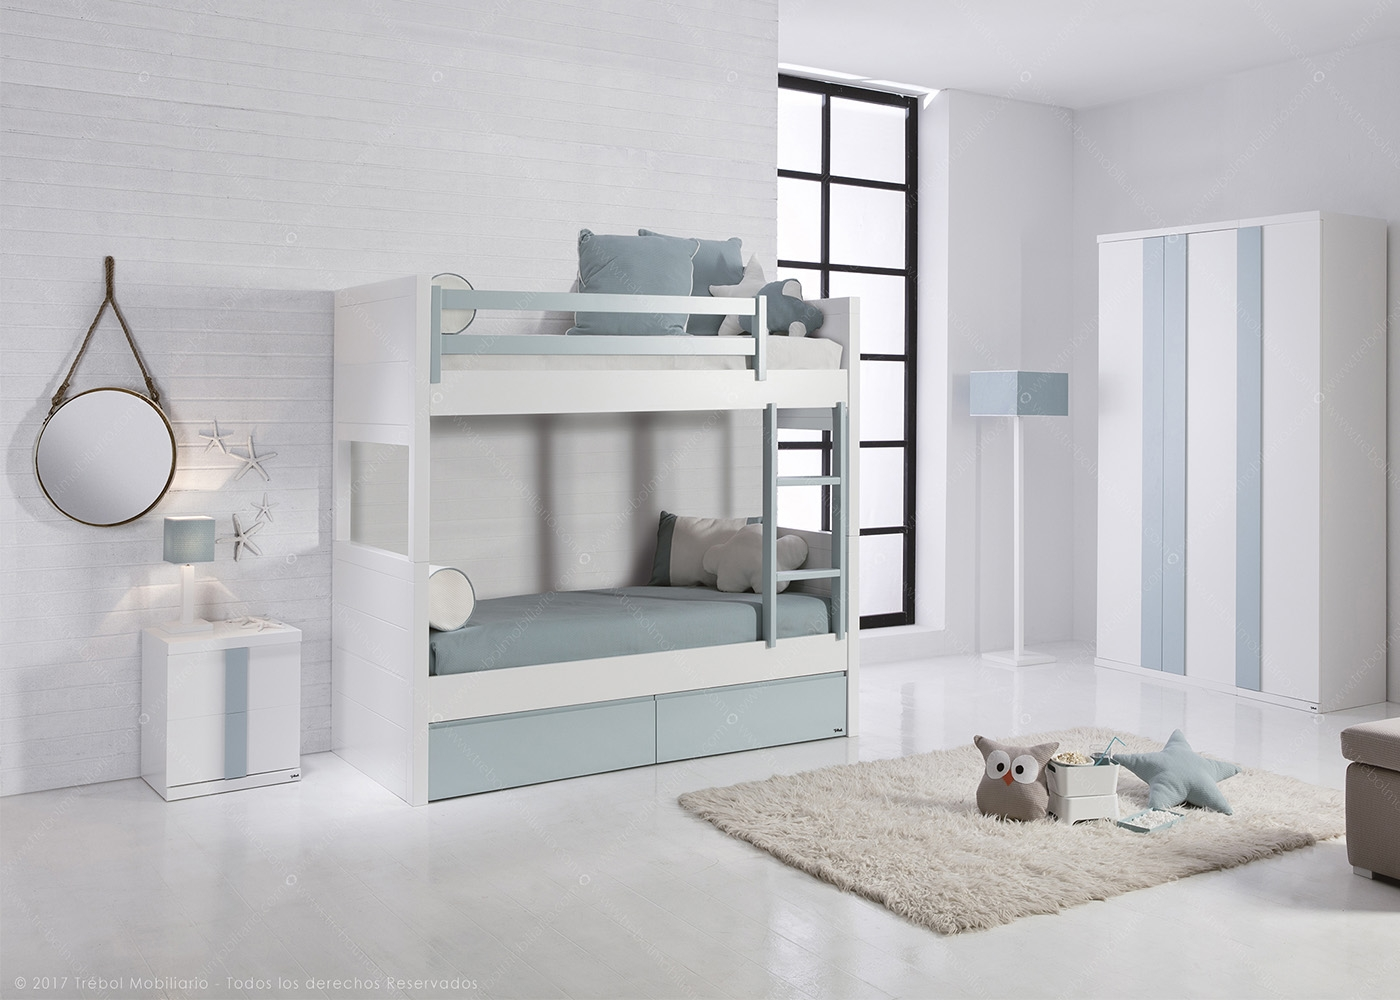 chambre 2 enfants au design moderne et de qualit chez ksl living. Black Bedroom Furniture Sets. Home Design Ideas